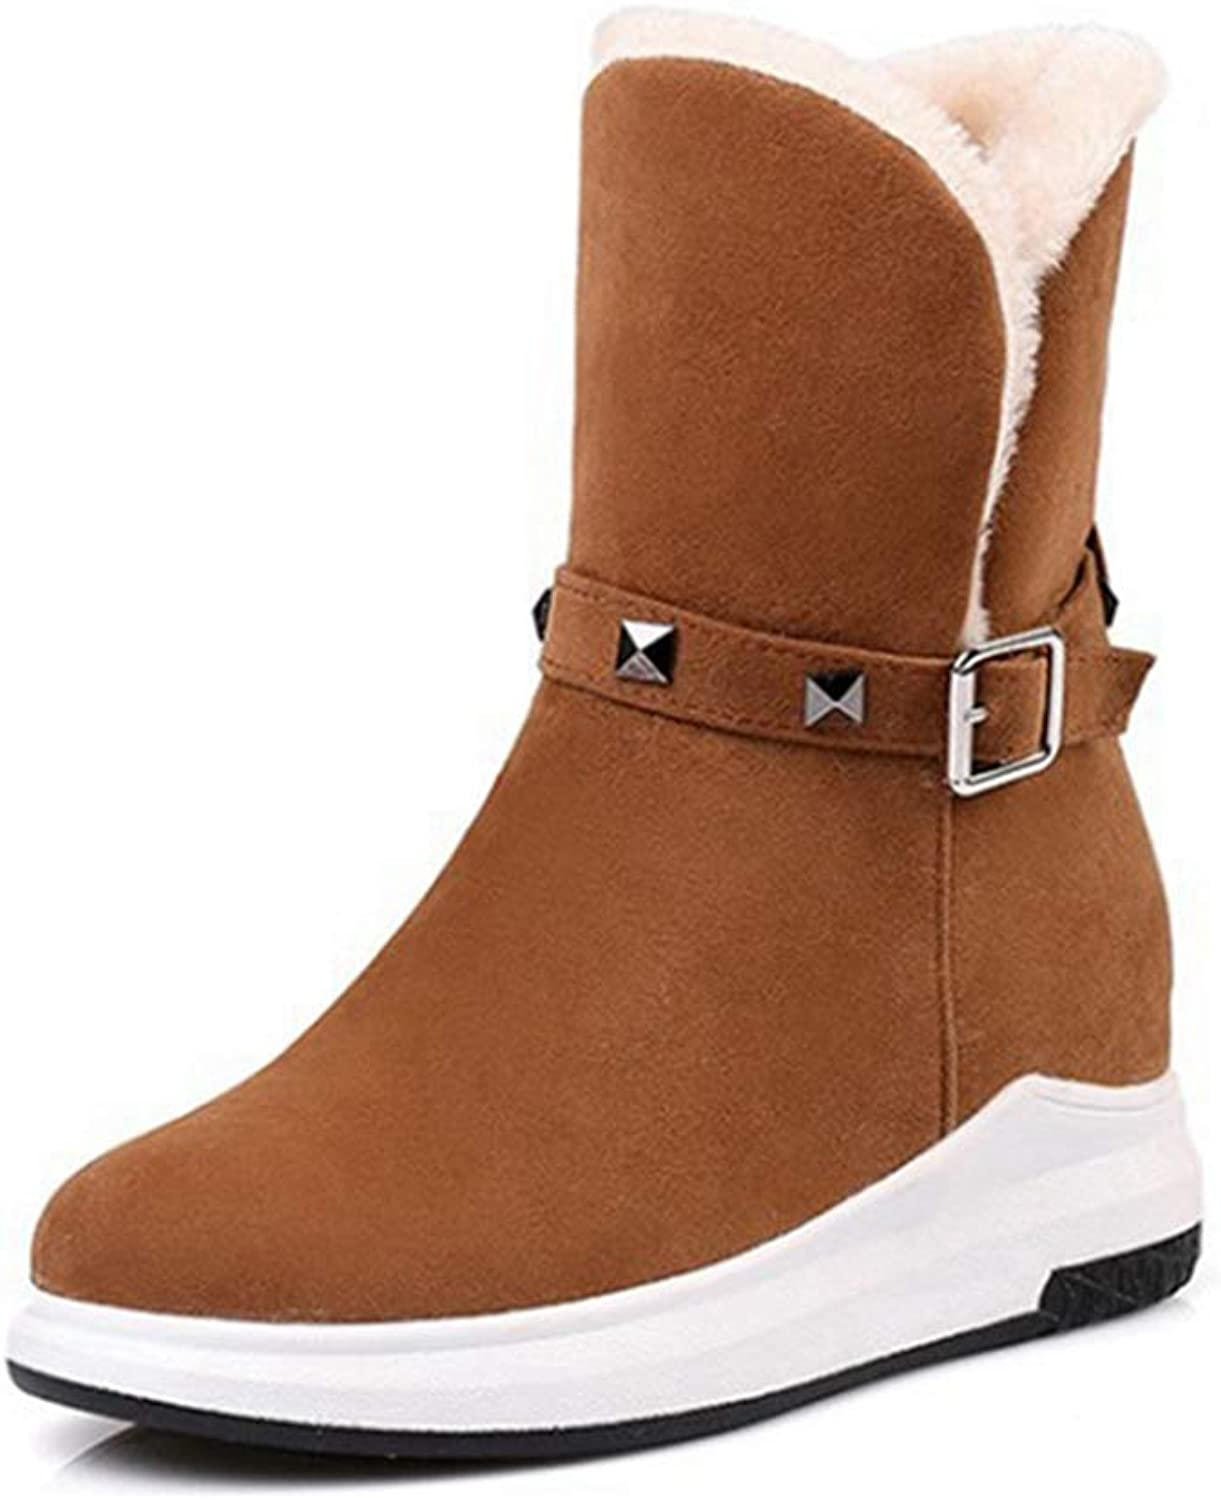 GIY Women's Fashion Suede Snow Ankle Boots Low Heel Buckle Waterproof Boots Winter Warm Snow Short Booties